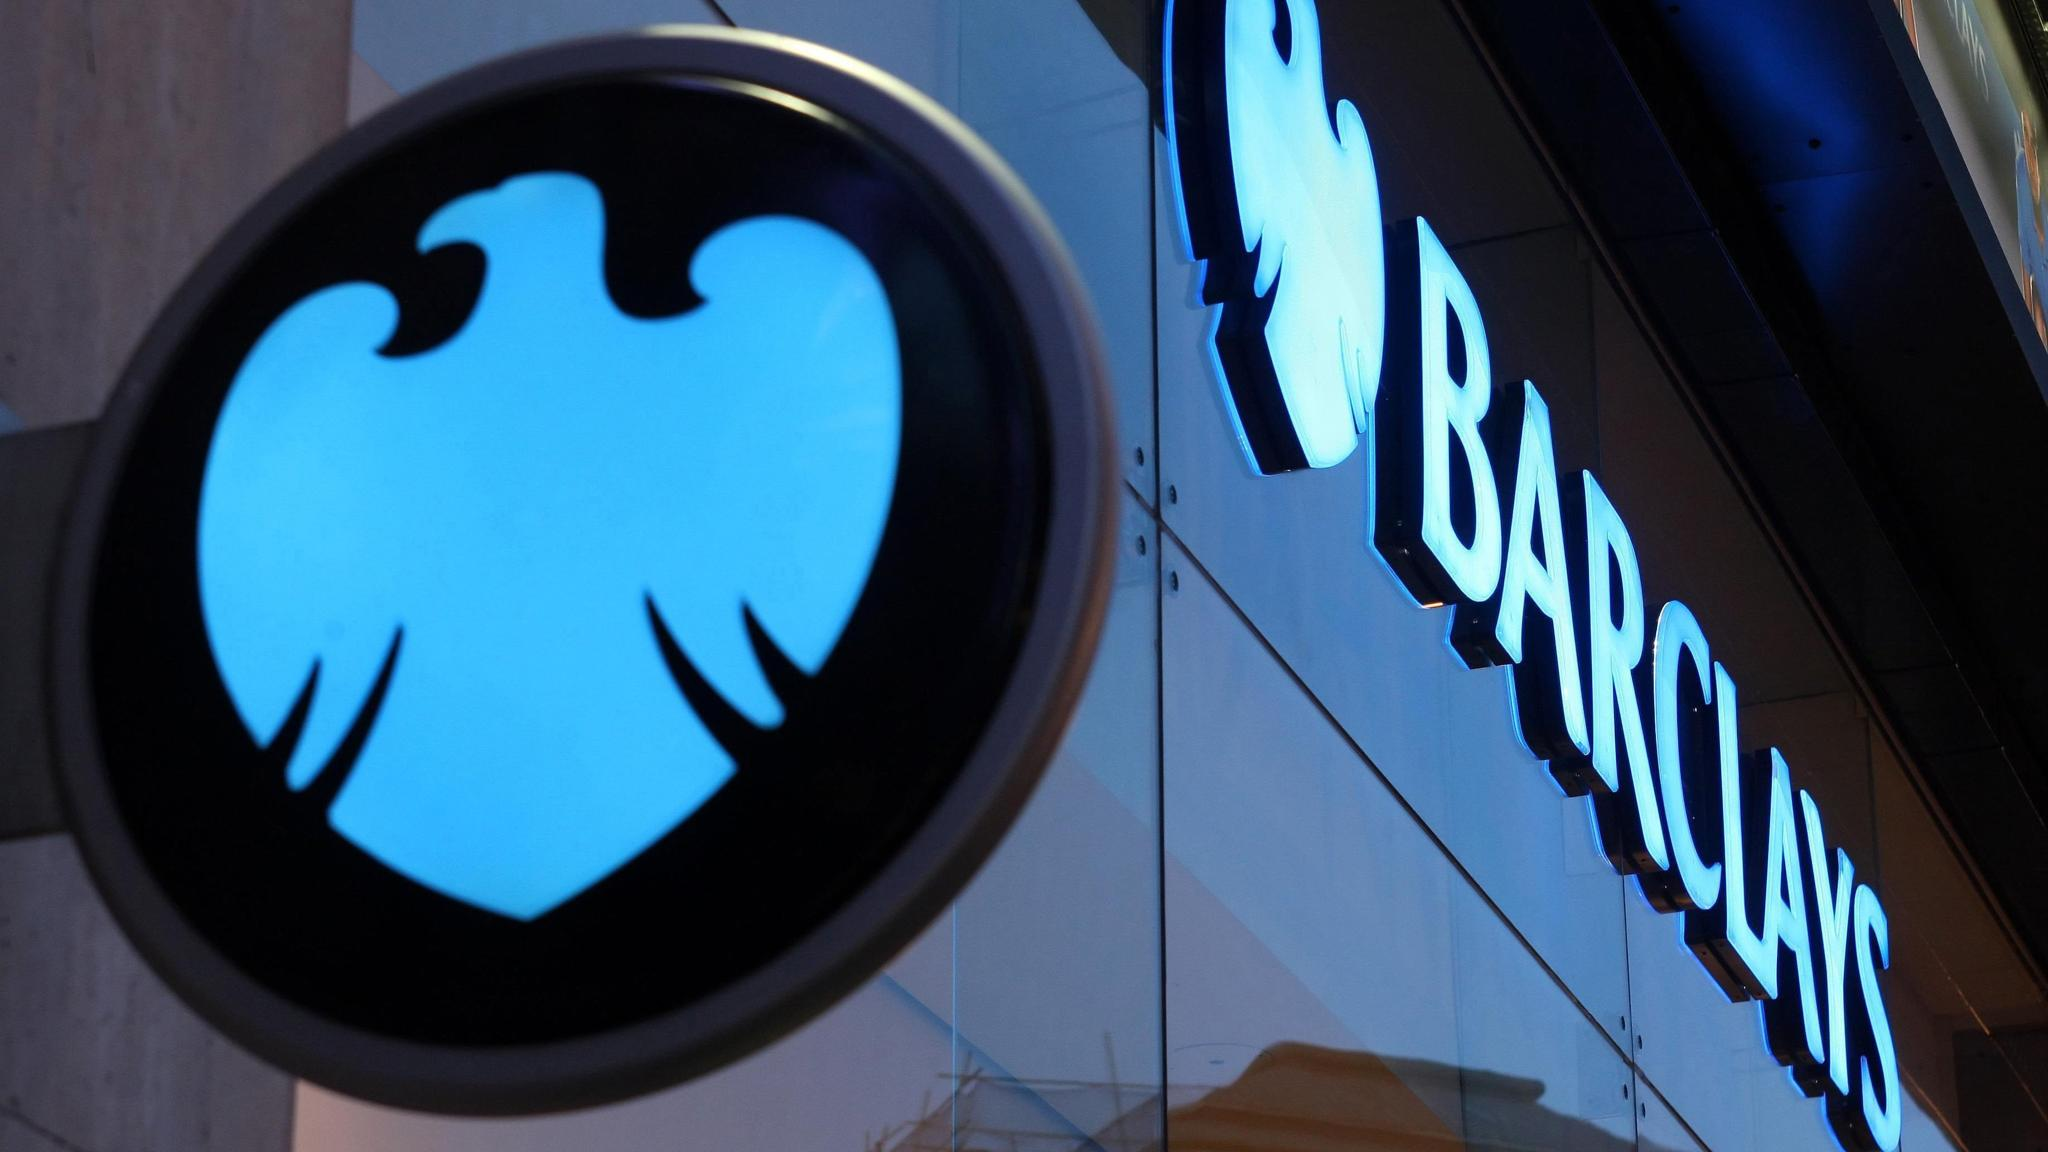 Cash Pool London Barclays Launches Defence Against Dark Pool Fraud Allegations